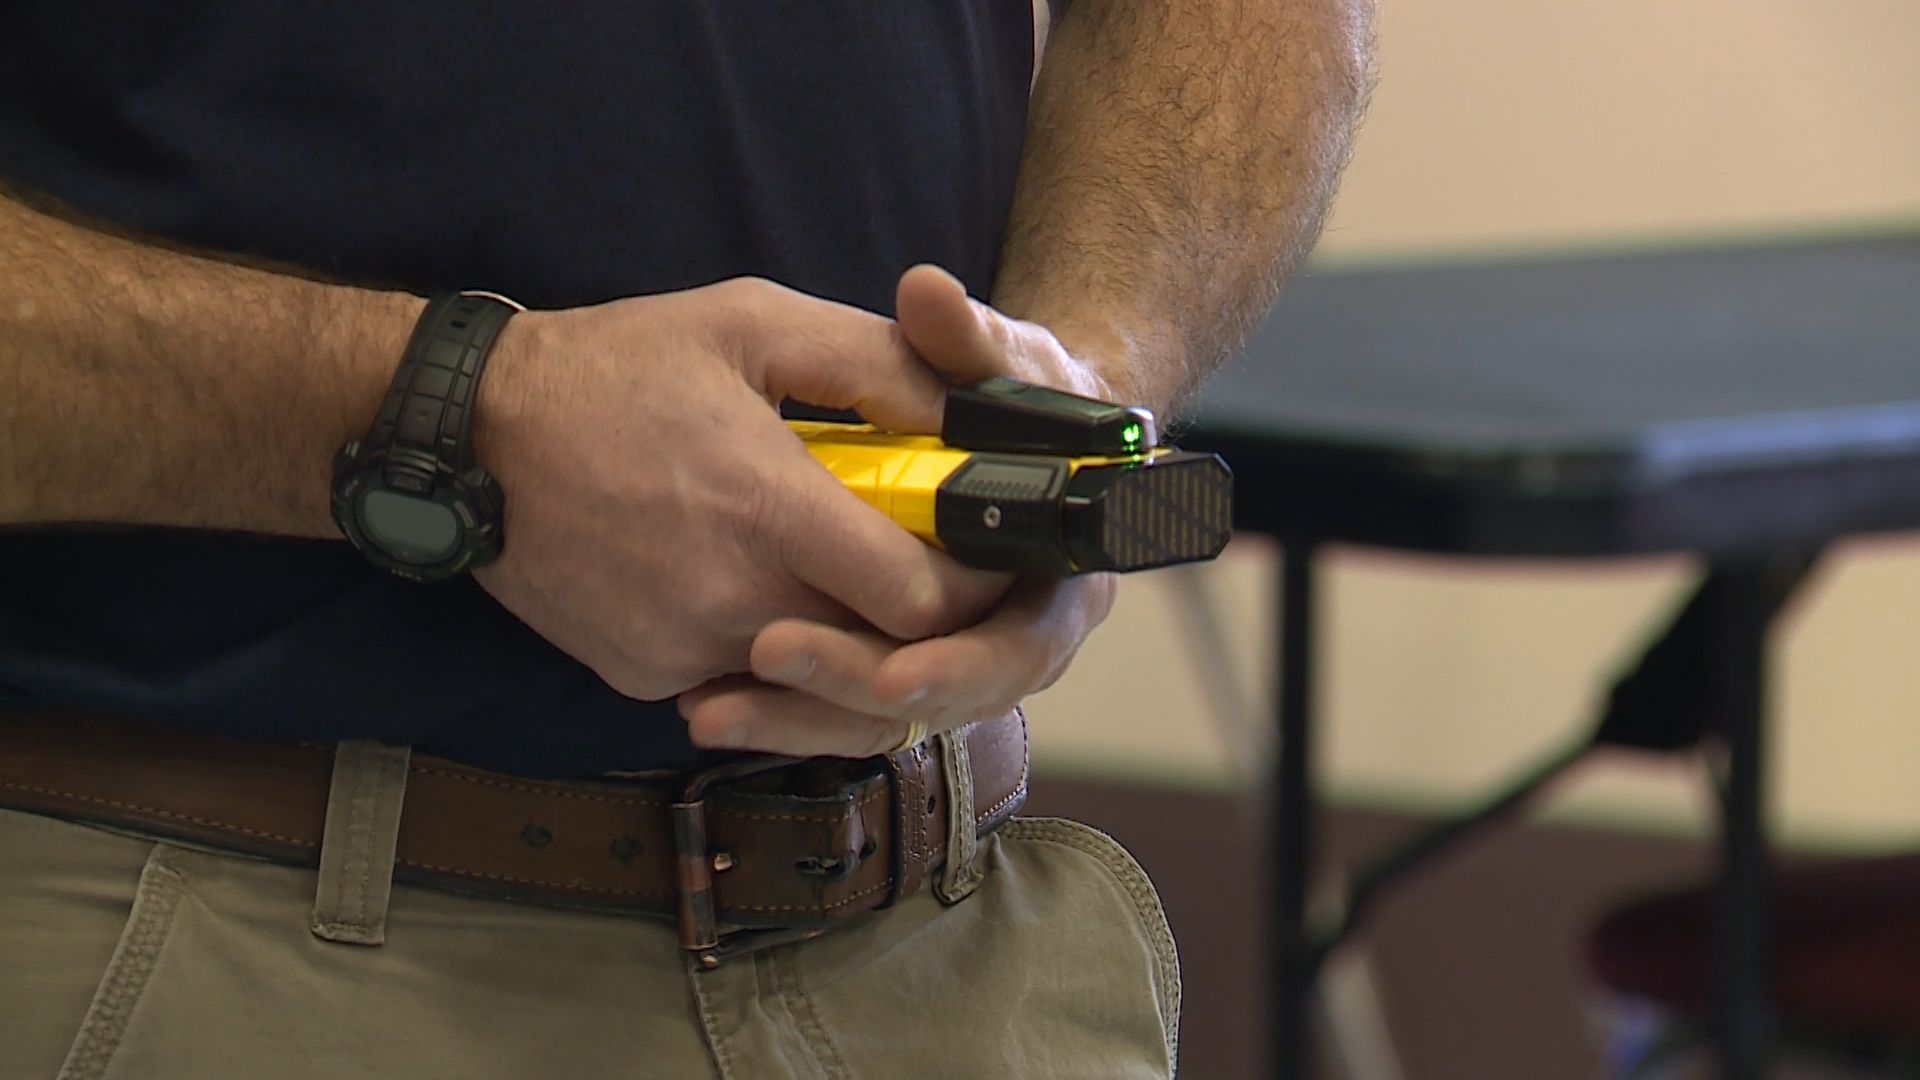 Portland police test new device to restrain people without use of force